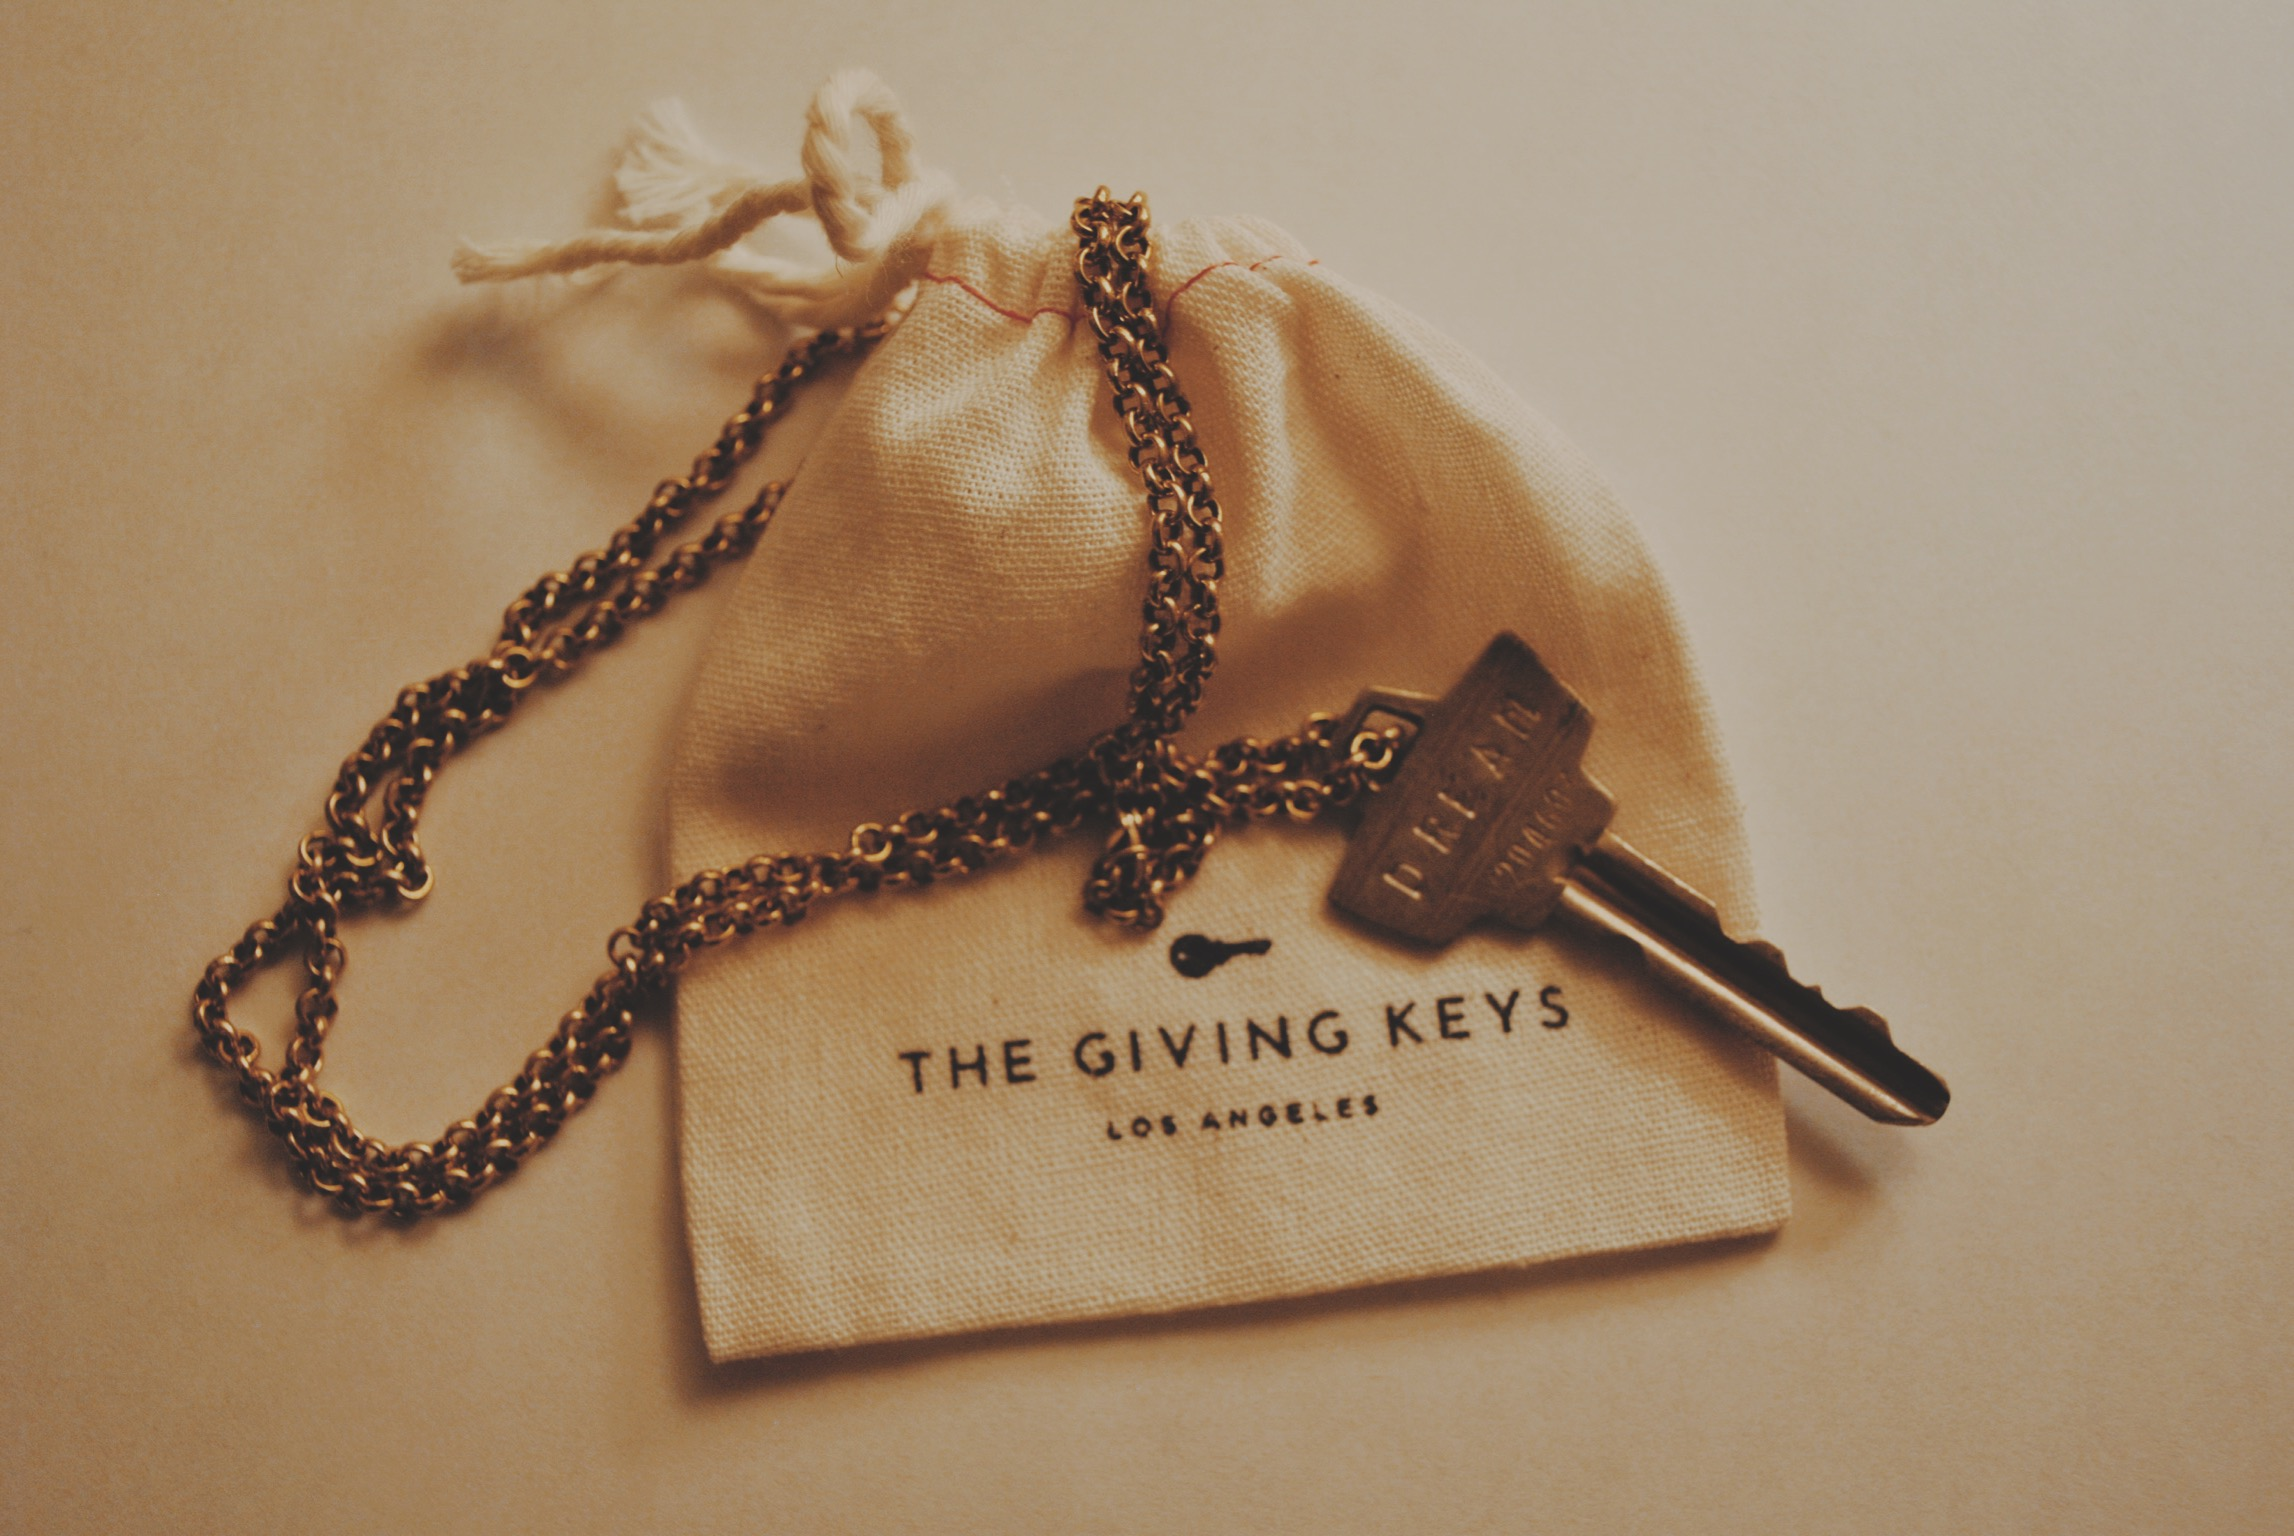 The Giving Key's employs individuals transitioning from homelessness to create inspiring jewellery from repurposed keys. Here is my purchased key with the  engraved  word Dream.